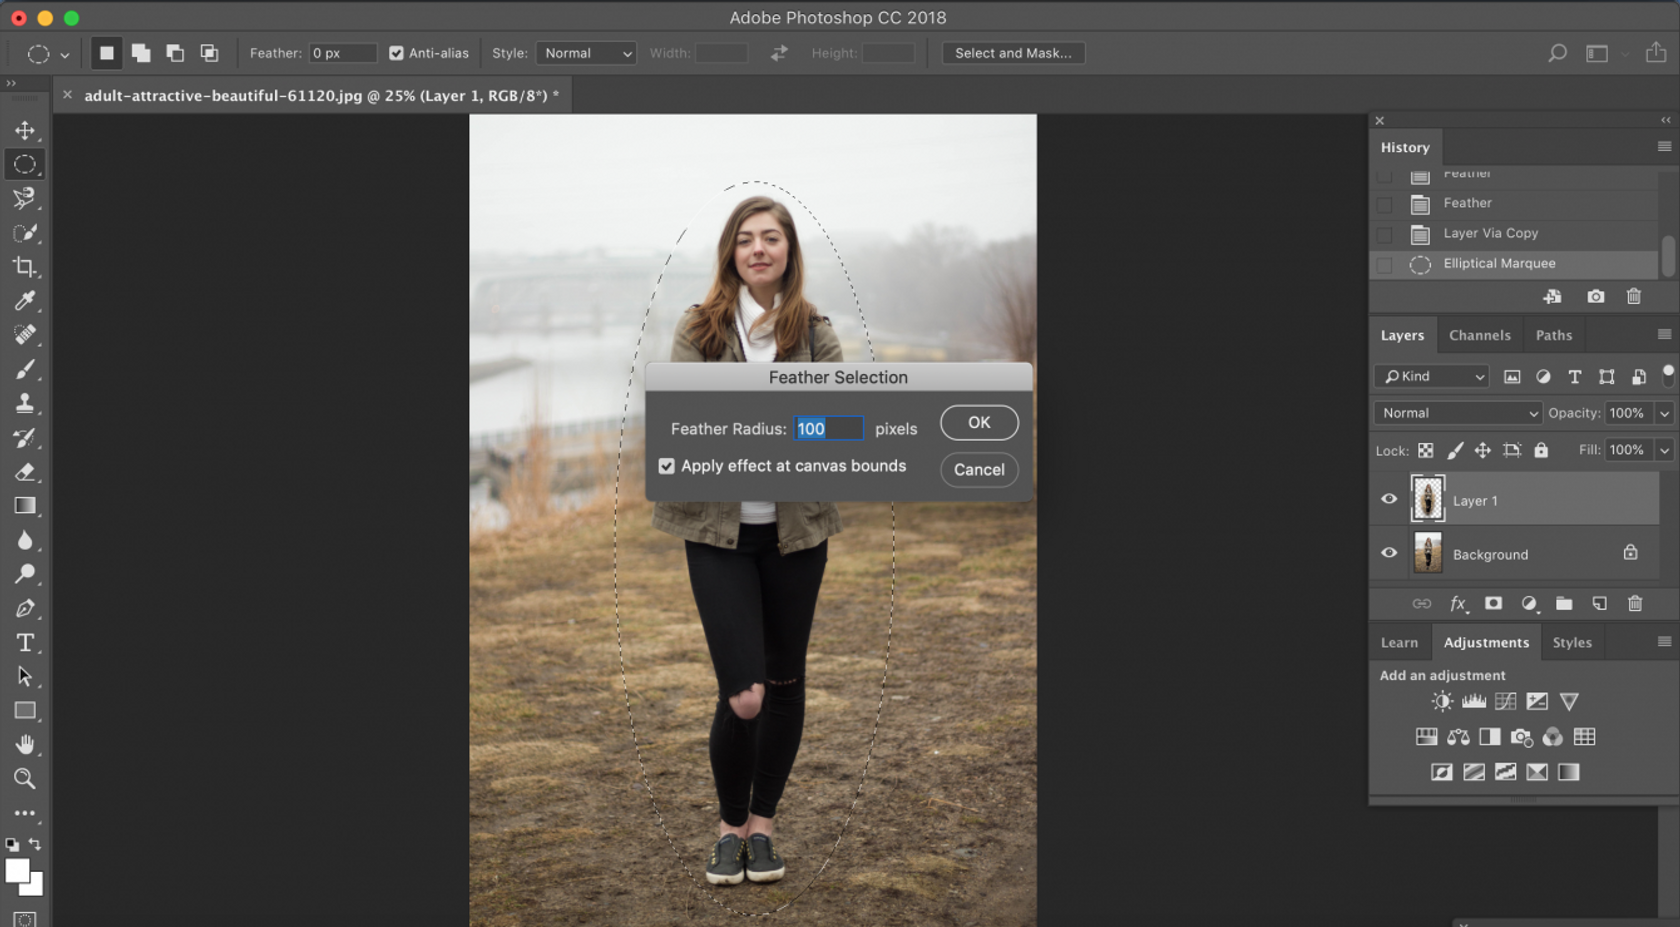 How to Smooth Edges in Photoshop: Photoshop Feather and Other Tools Image9